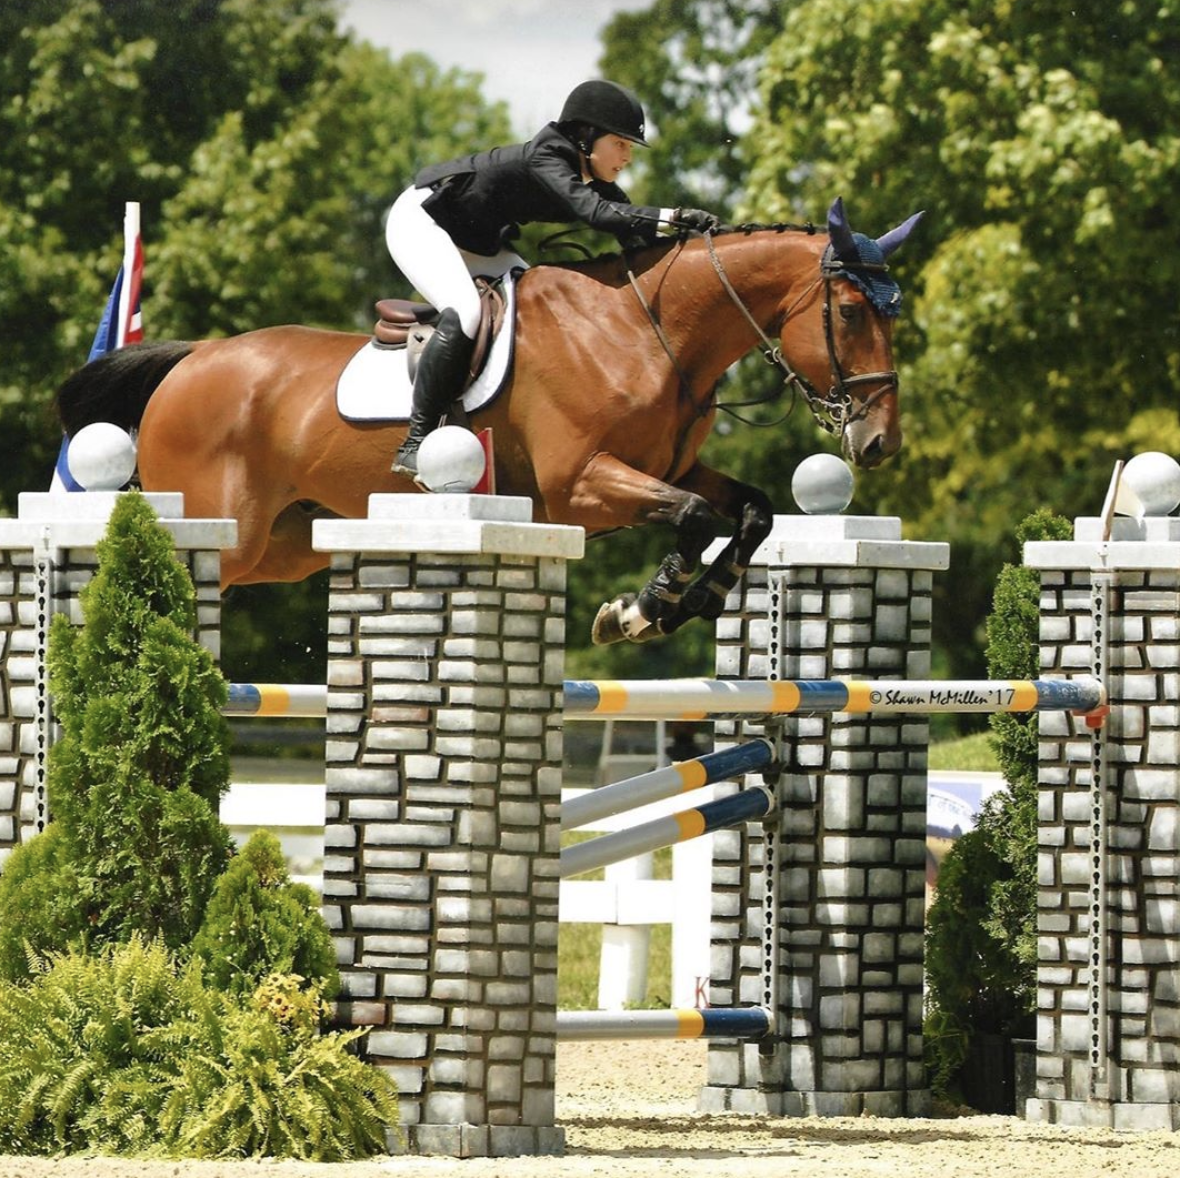 Lizzy Traband from Penn State University competing at the Kentucky Horse Park. Photo by Shawn McMillan